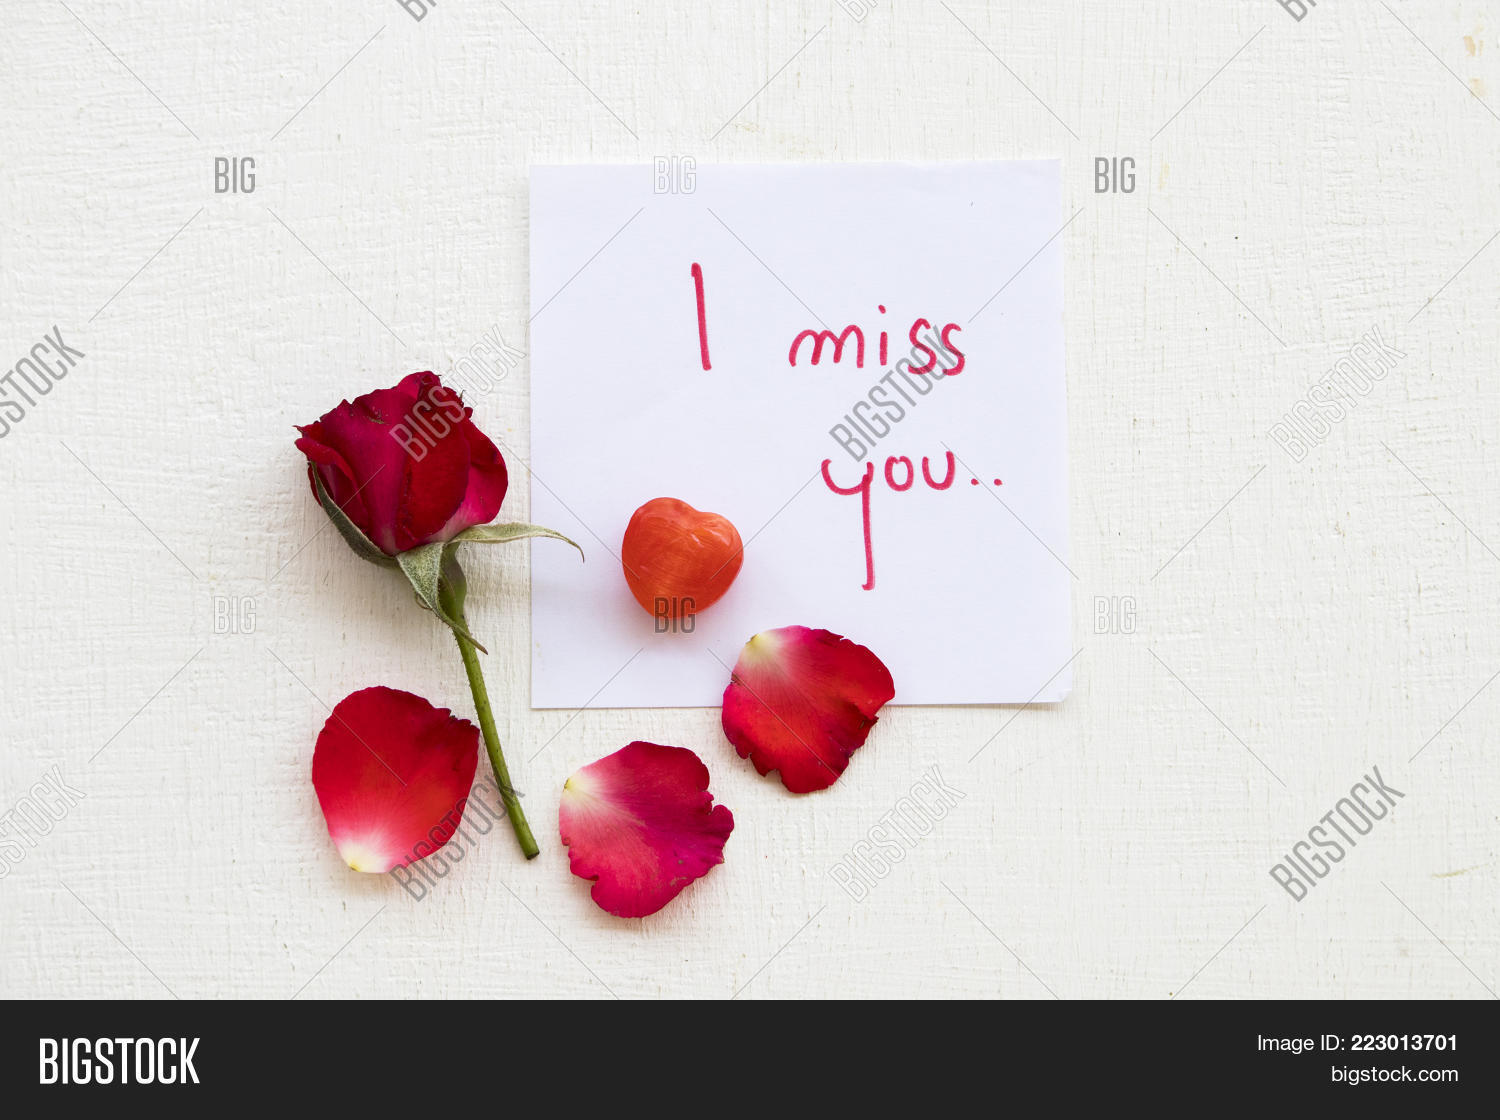 Miss You Message Card Image Photo Free Trial Bigstock